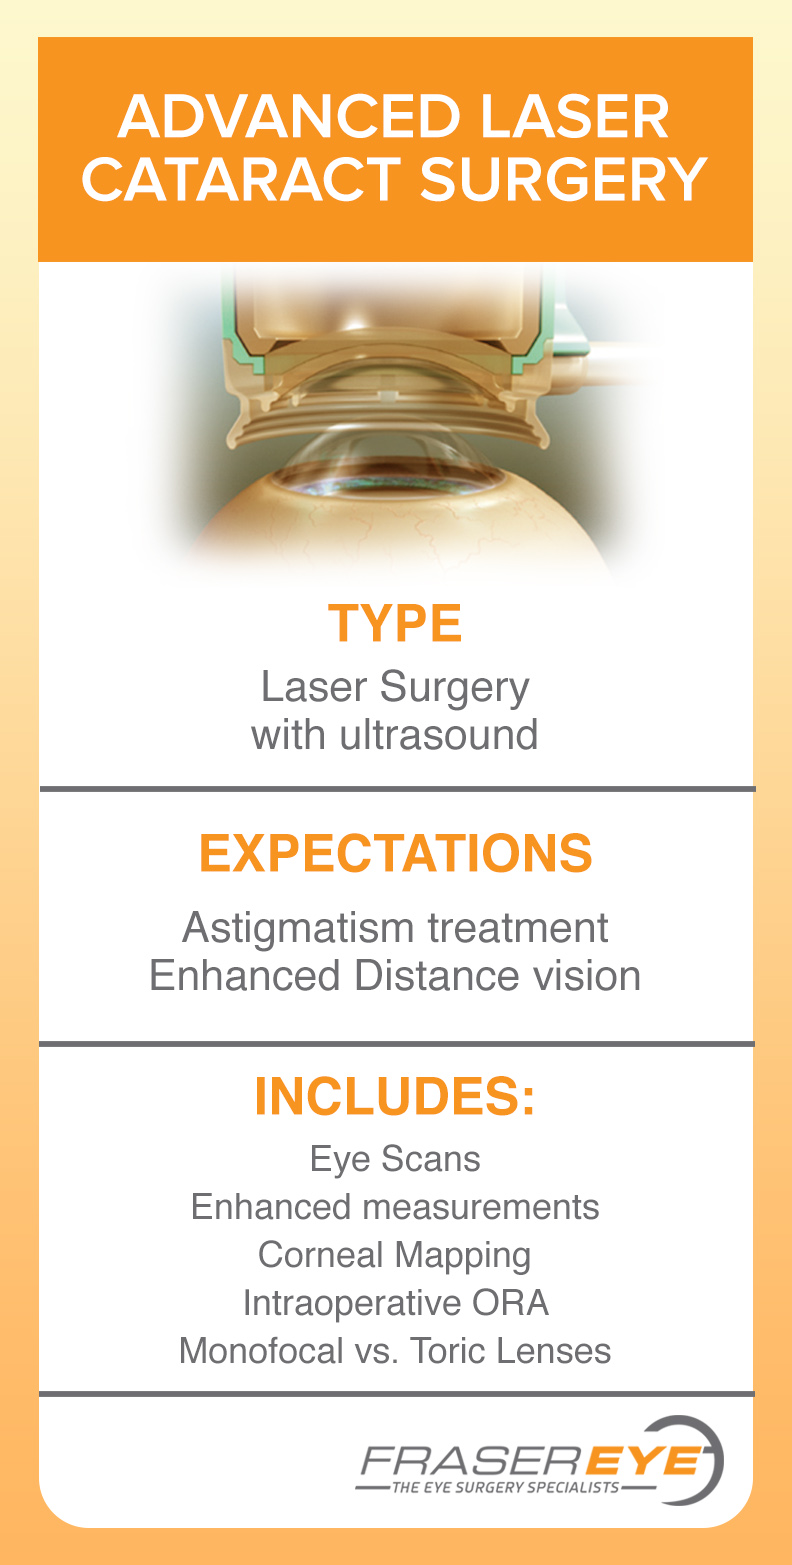 Advanced Laser Cataract surgery